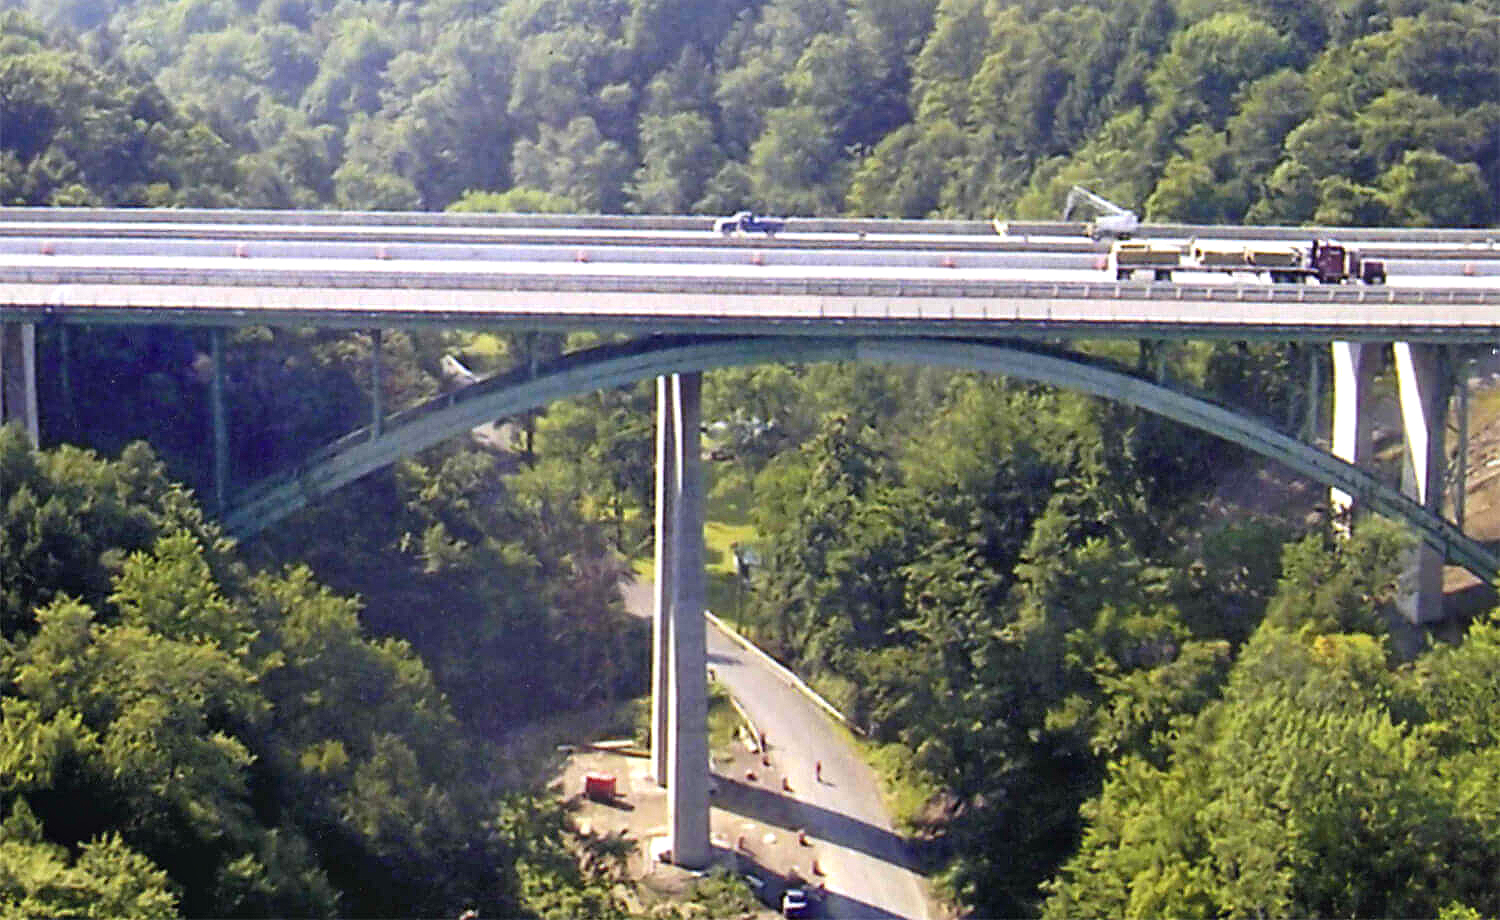 Replacement of I81 Bridges over Hoxie Gorge